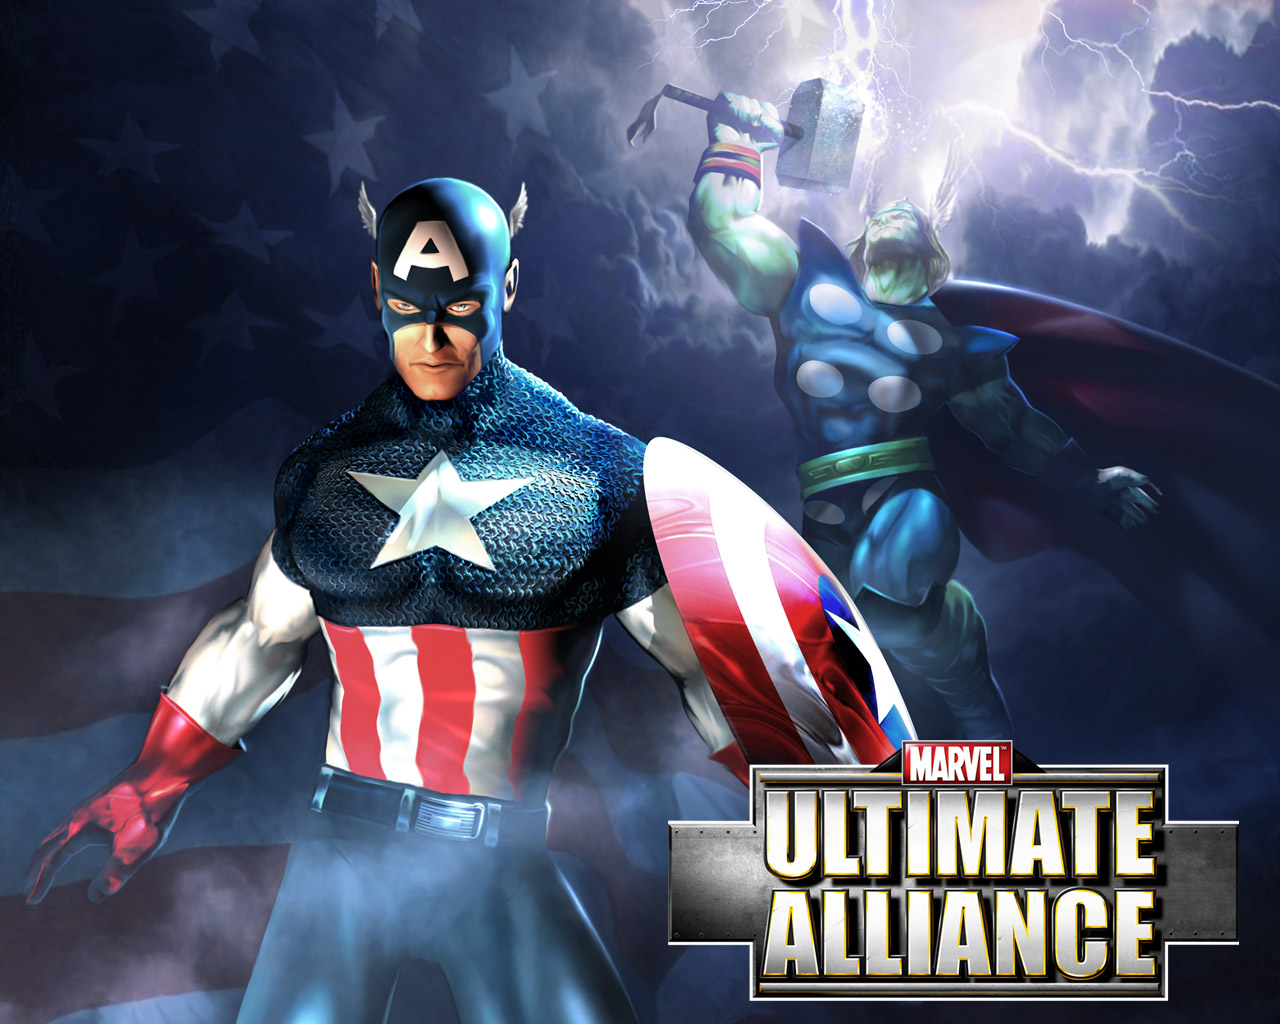 Marvel Ultimate Alliance Captain America by Bestgamewallpapers 1280x1024